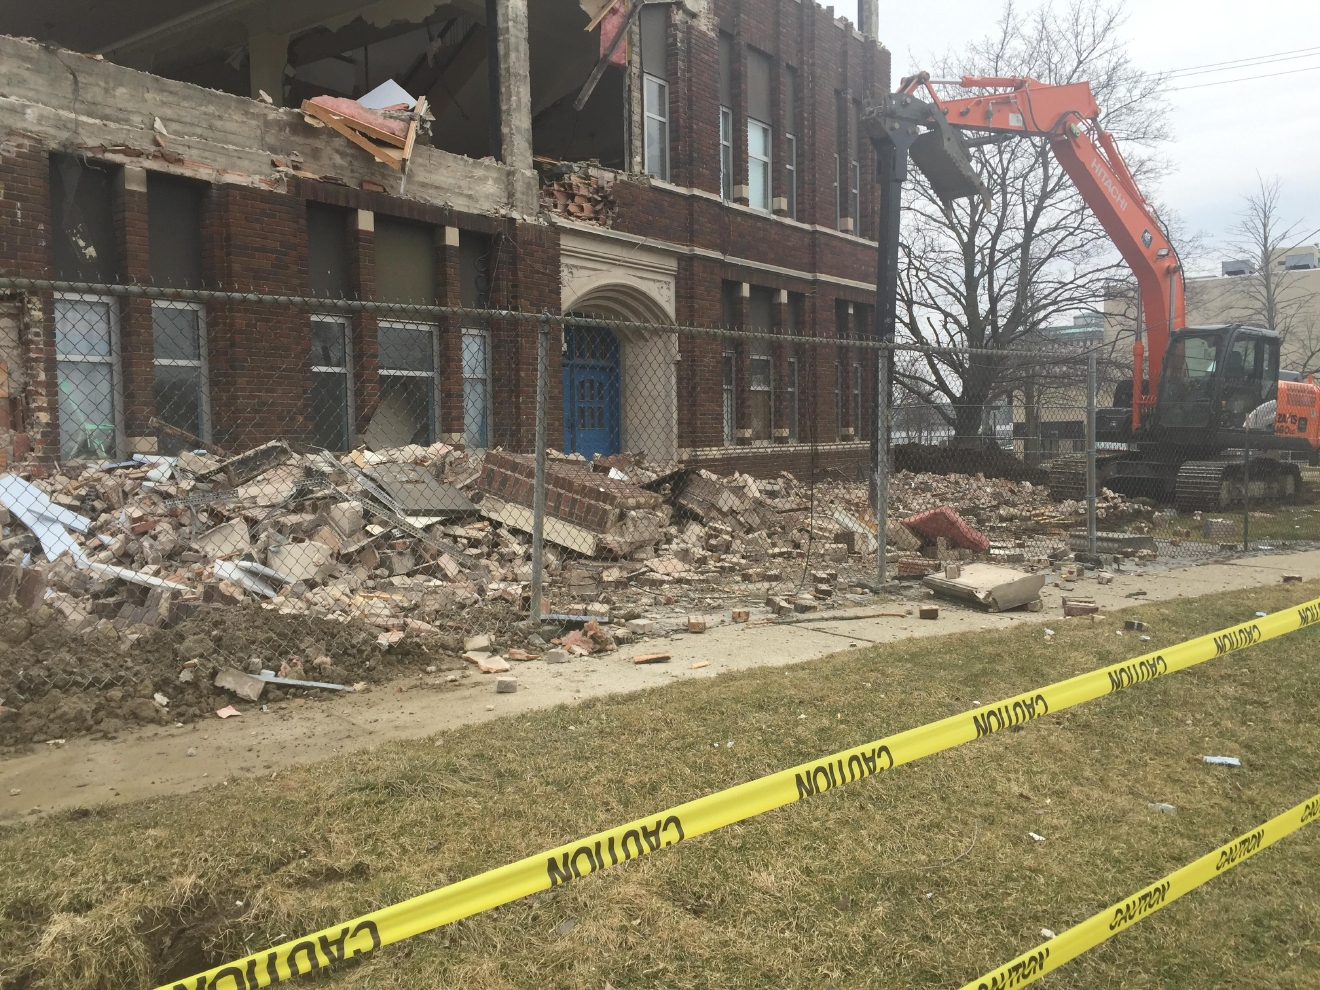 An iconic 1920s building in Flint is being demolished right now. The former Catholic school holds many memories for its former students. (Photo Credit: Stephanie Parkinson)